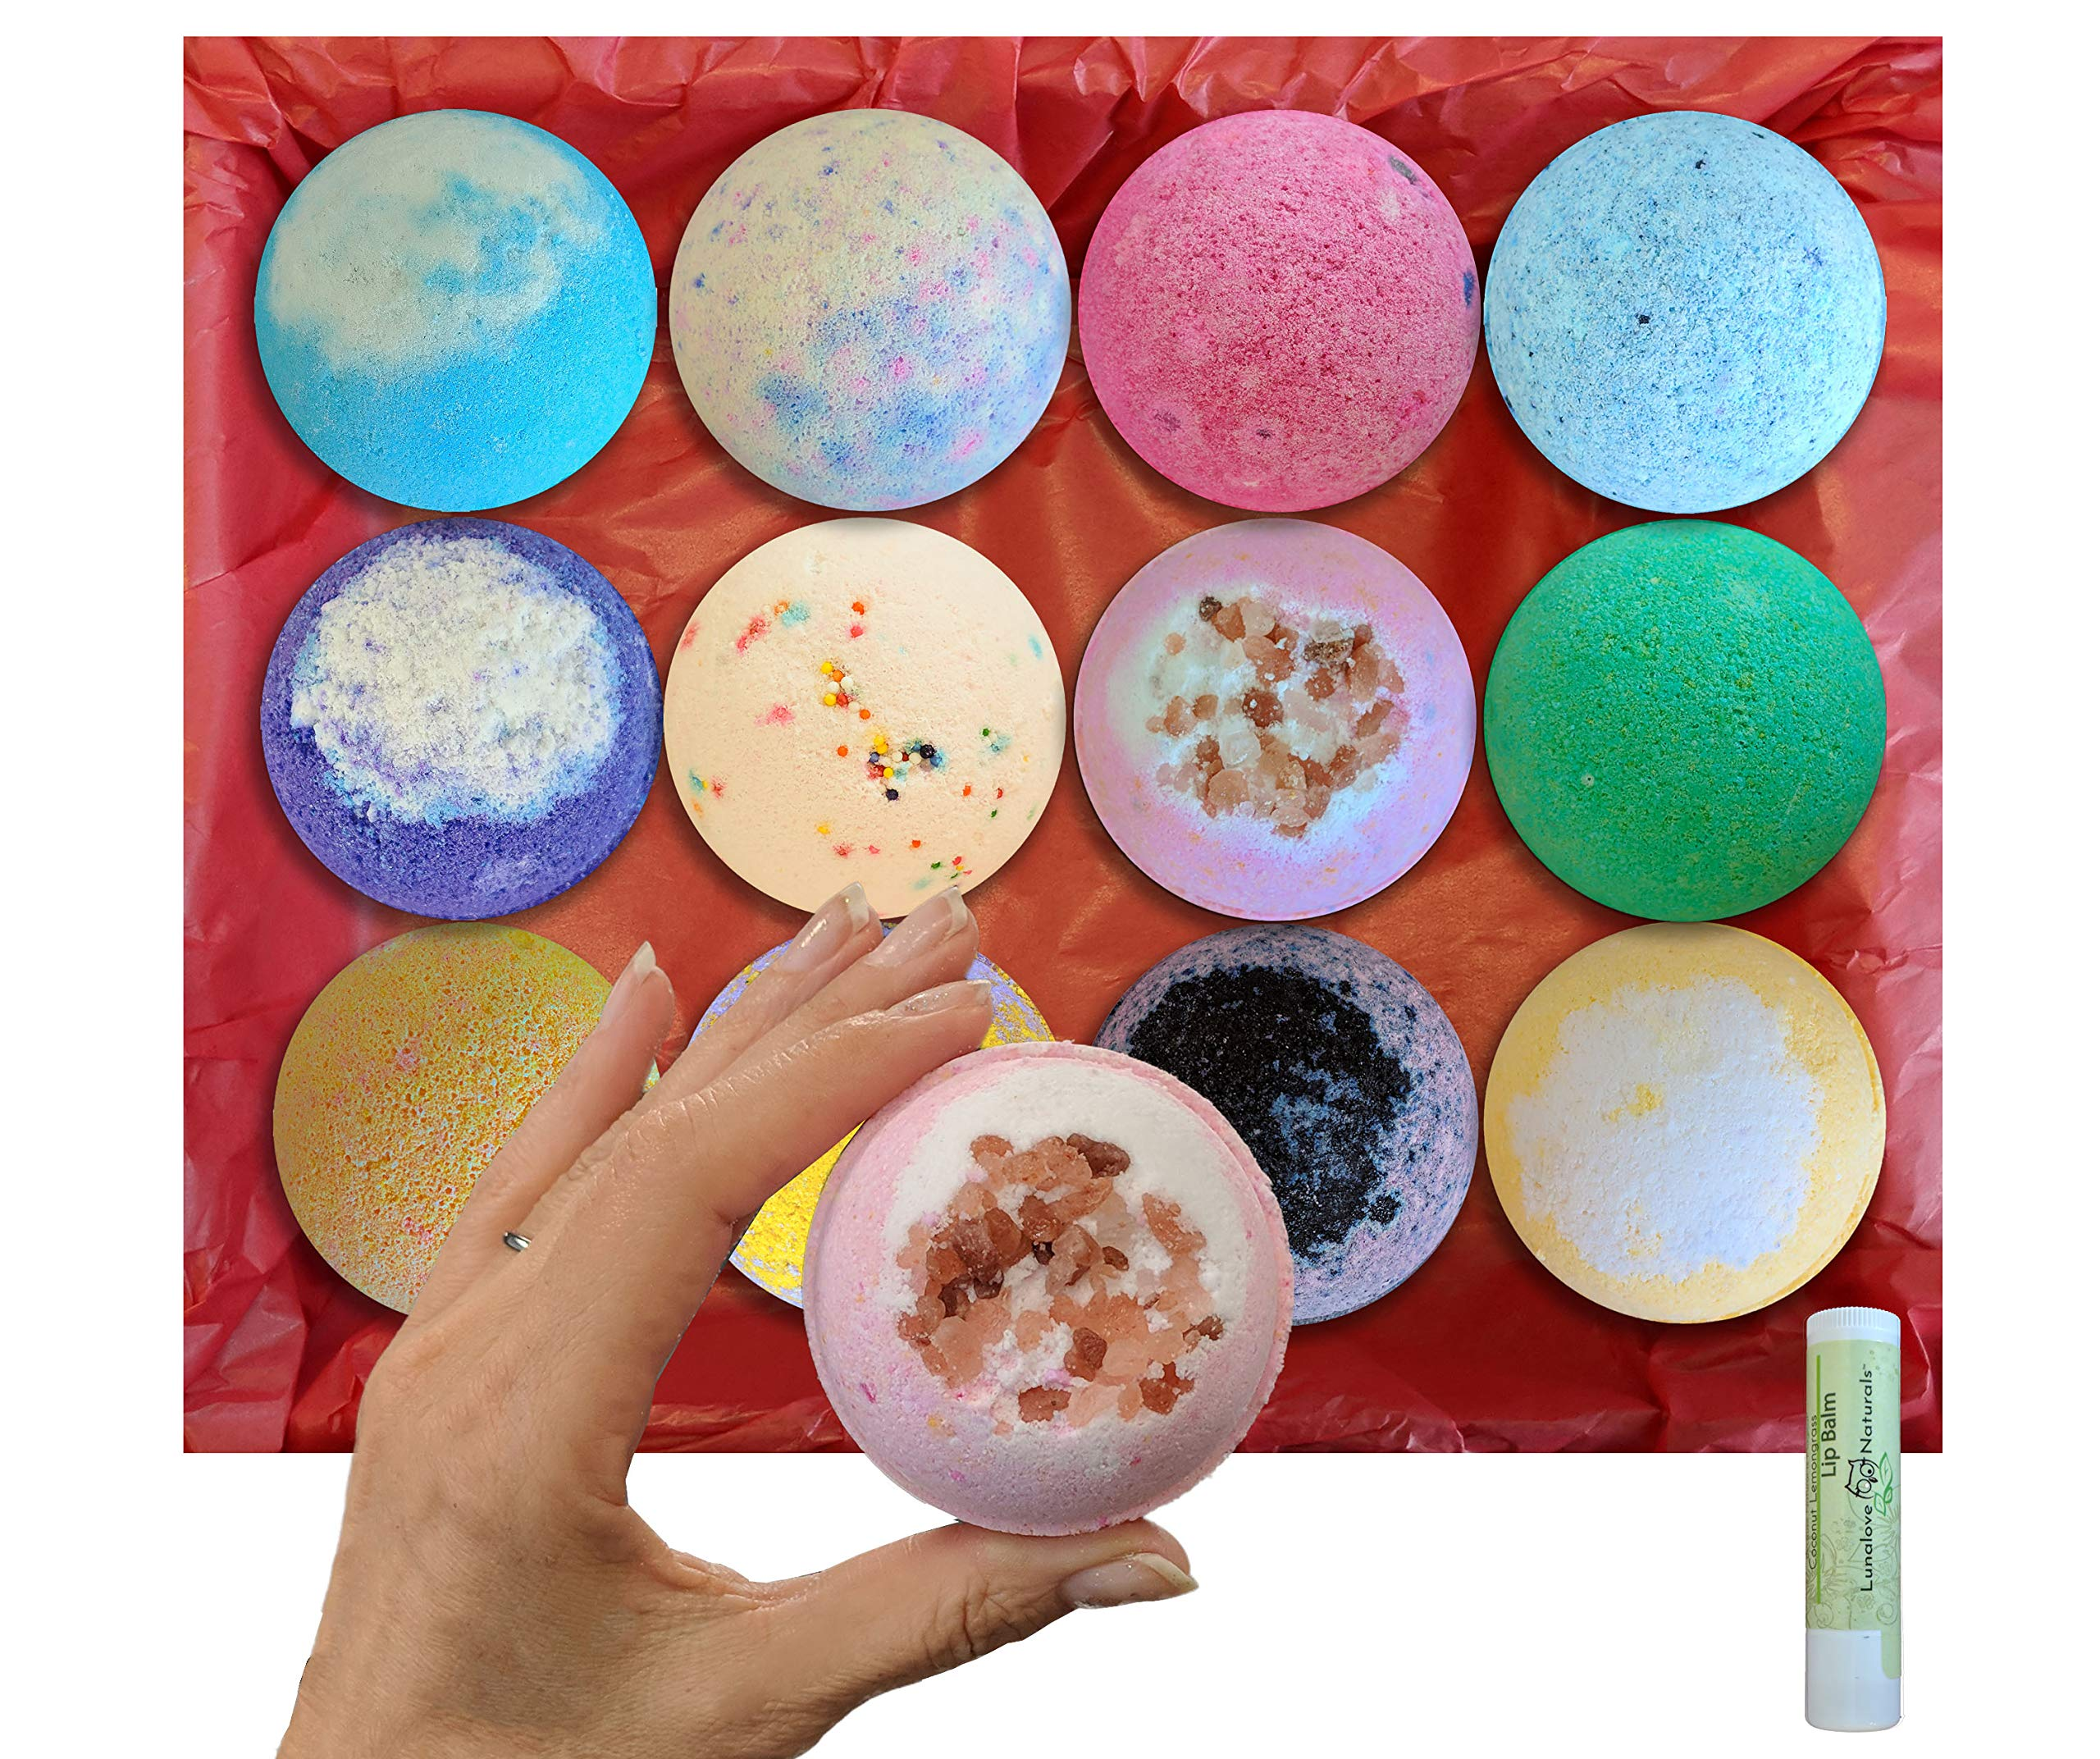 12 Extra Large 5 oz Vegan Bath Bombs, w/Free Lip Balm, Individually Wrapped Gift Set, Organic Coconut Oil & Aromatherapy Essential Oils, Cruelty Free, PABA Free, Handmade in the USA